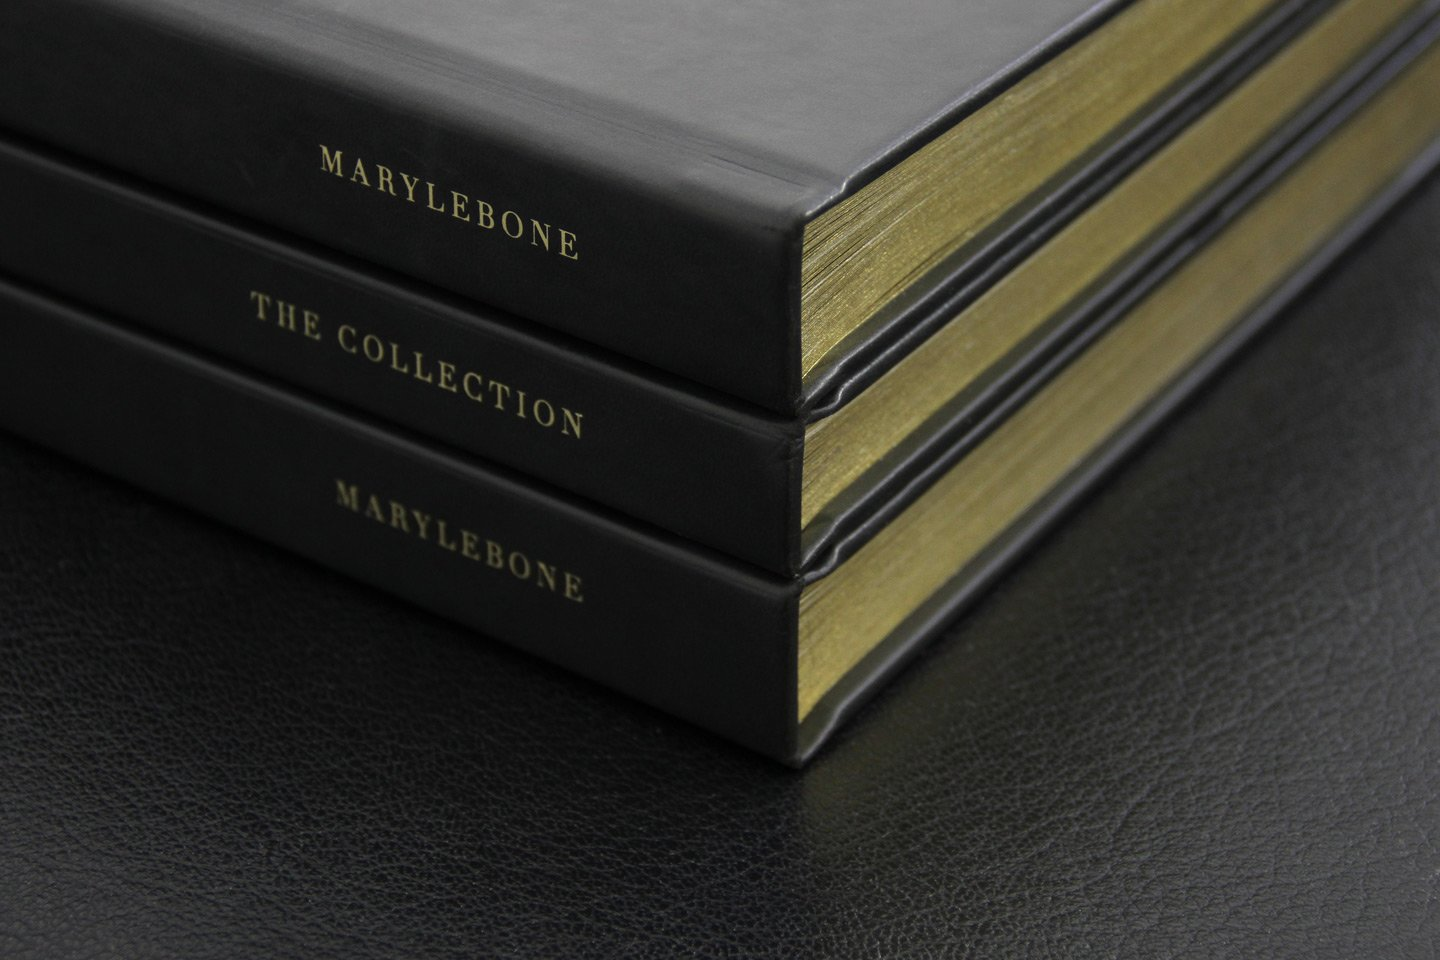 The W1 London Book Stacked for Royalton